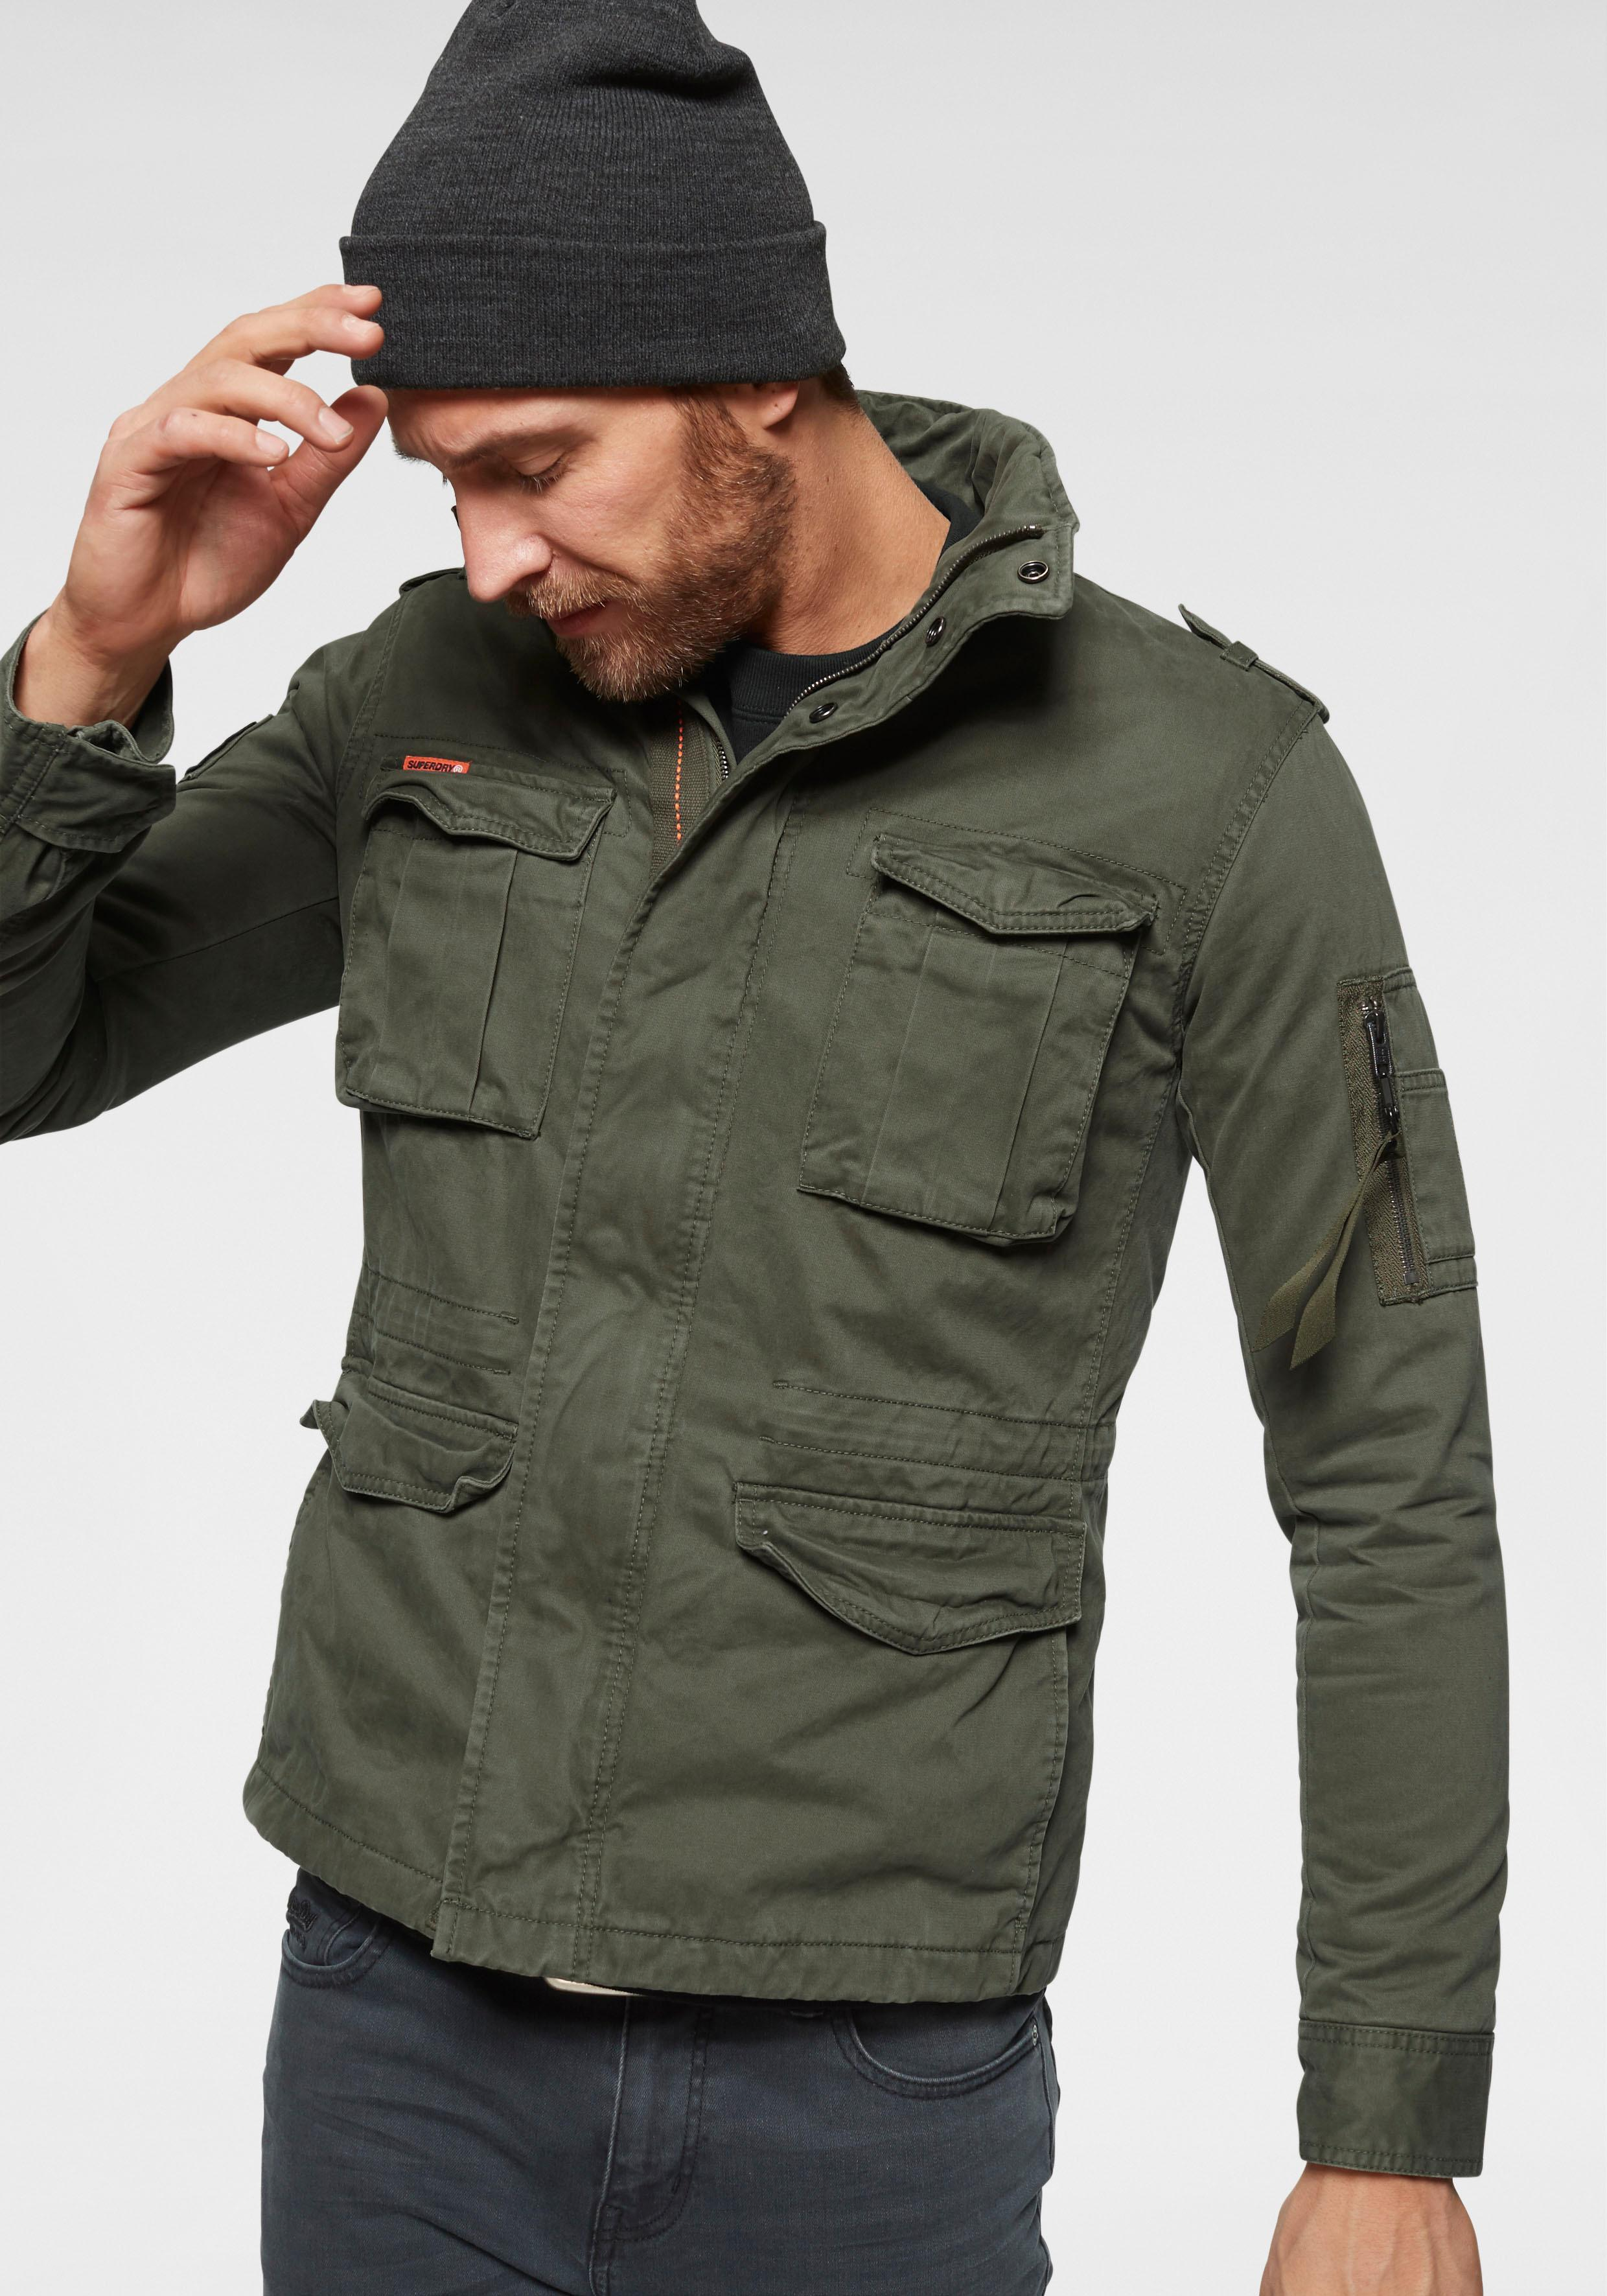 Superdry Fieldjacket | Bekleidung > Jacken > Fieldjackets | Superdry